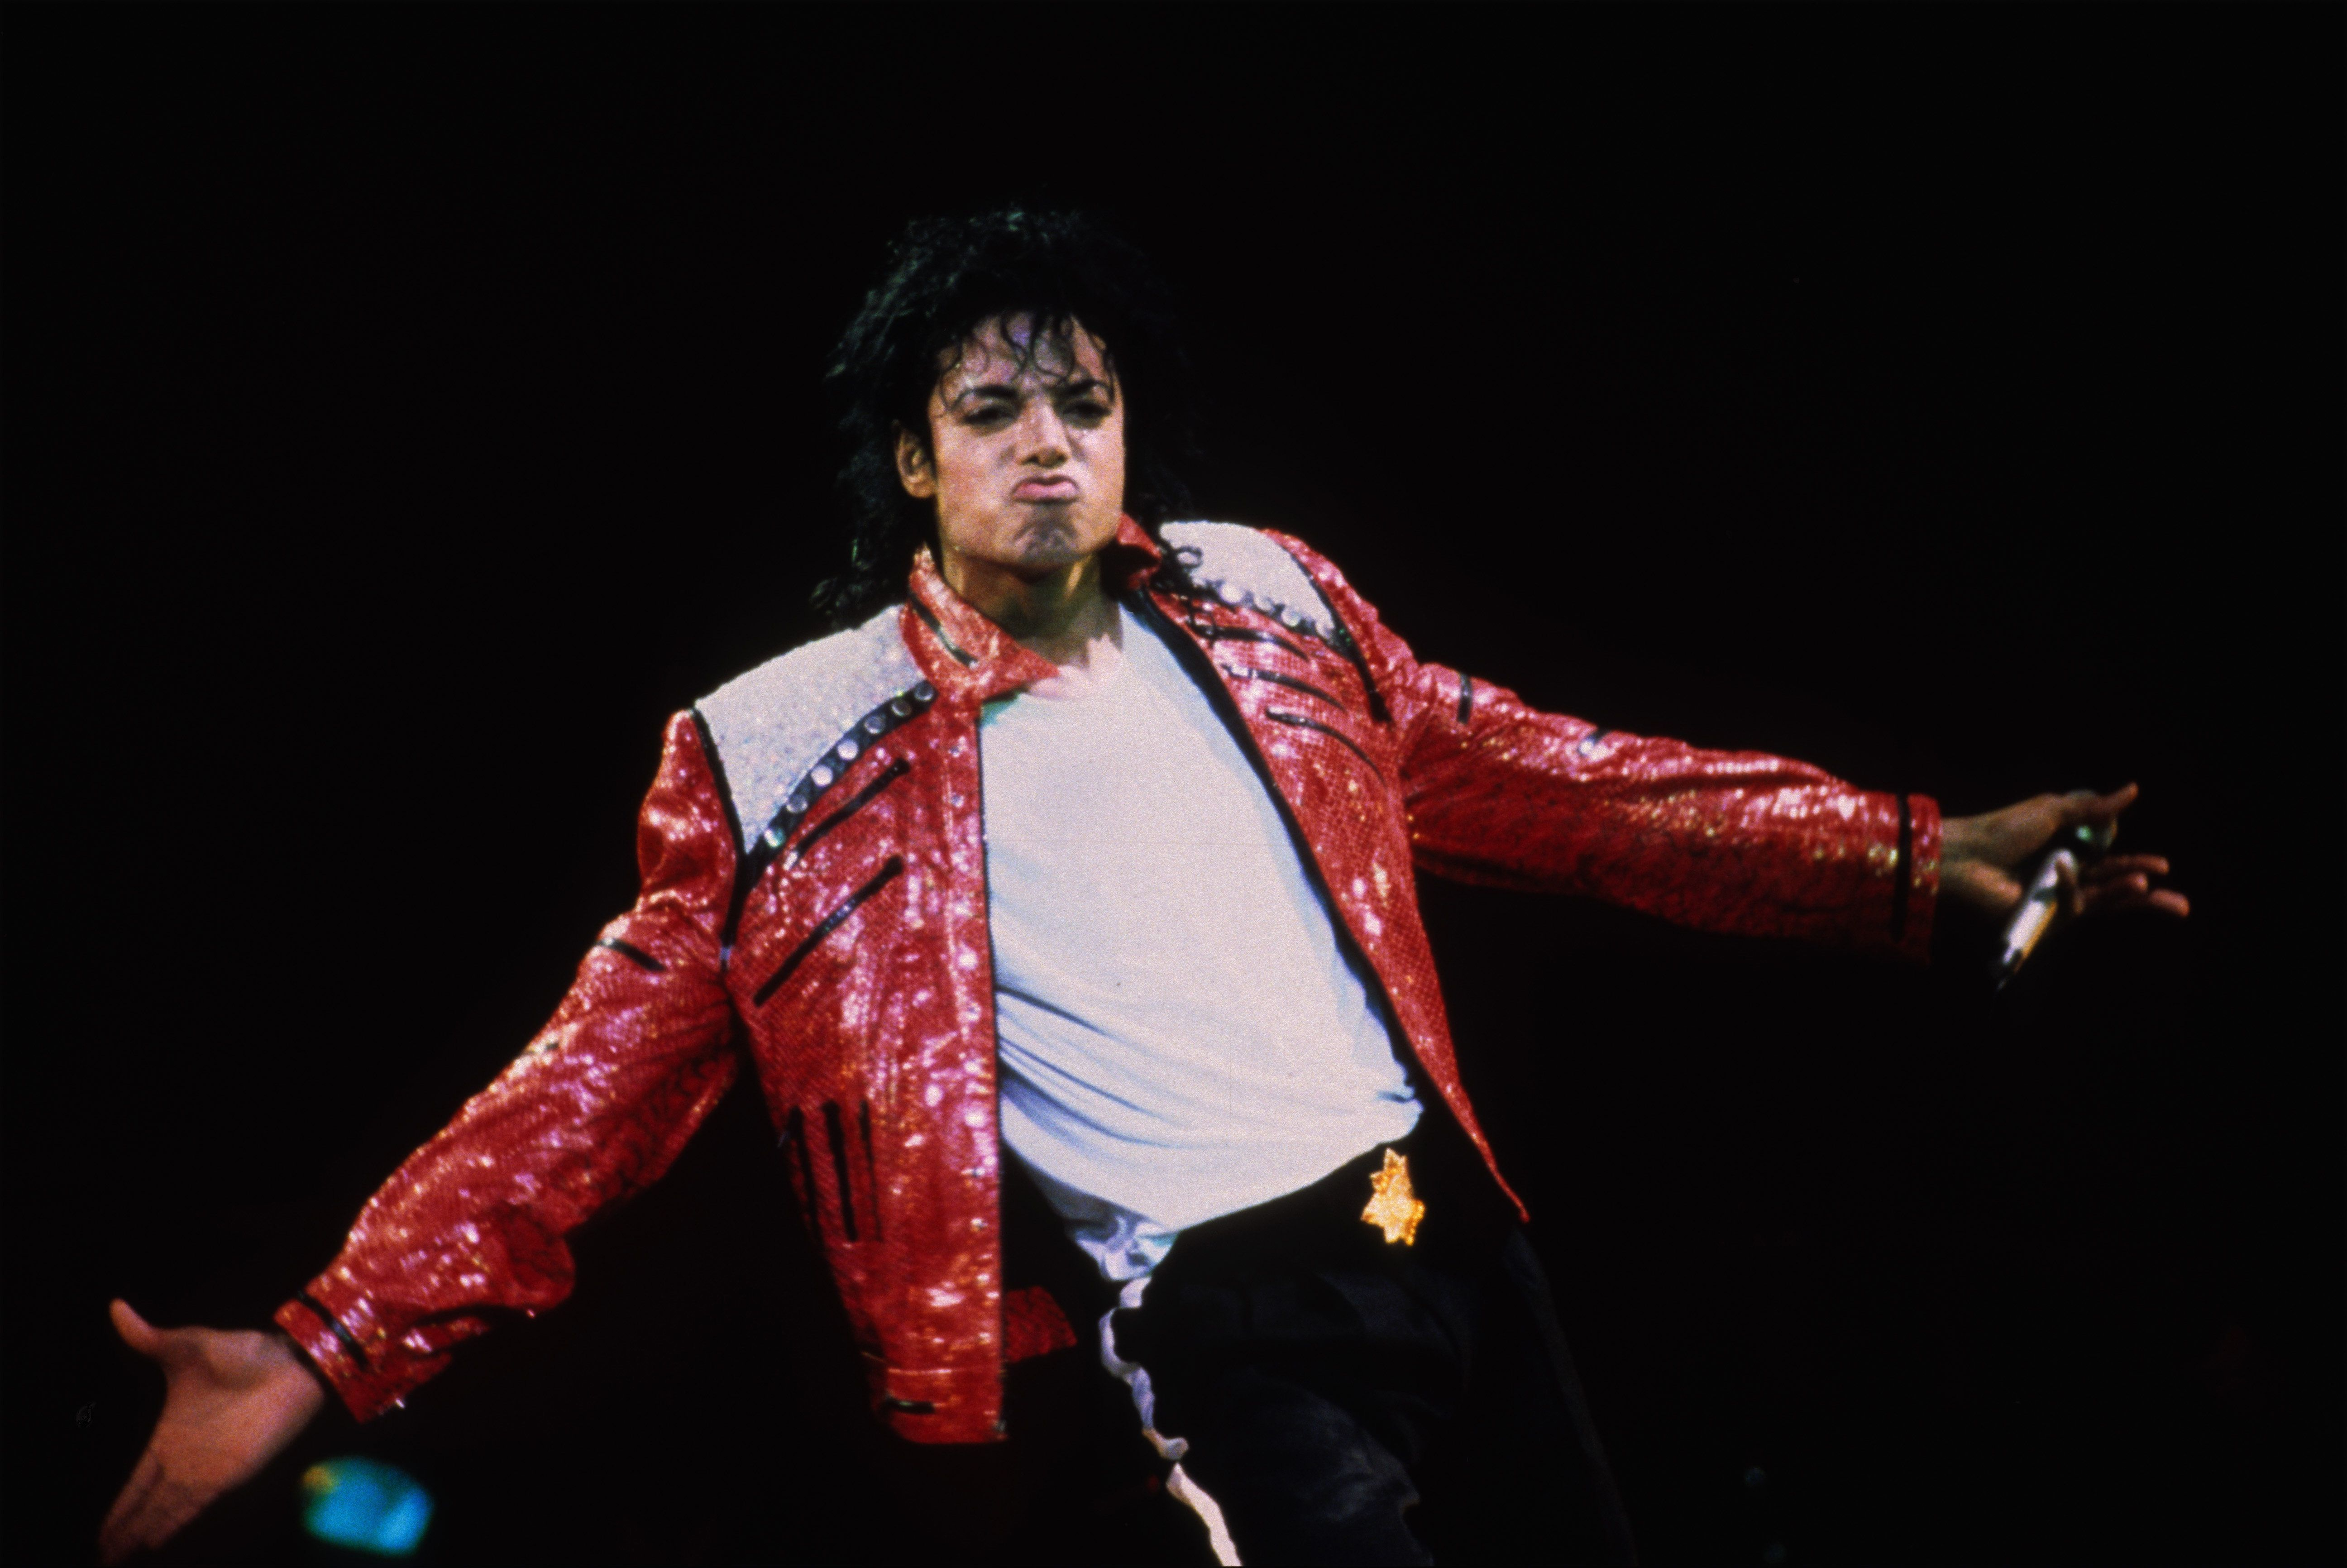 VARIOUS, VARIOUS - JUNE 25:  Michael Jackson performs in concert circa 1986.  (Photo by Kevin Mazur/WireImage)